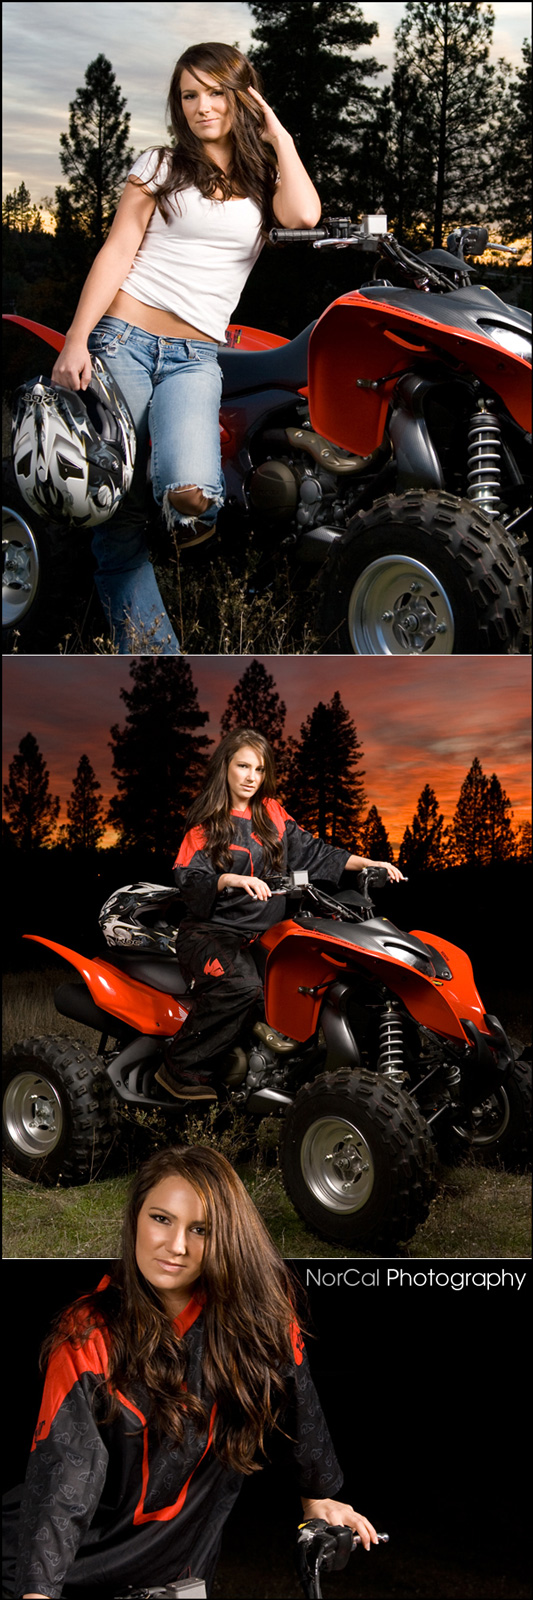 Female model photo shoot of ChelseyHill by norcalphotography in Grass Valley, CA